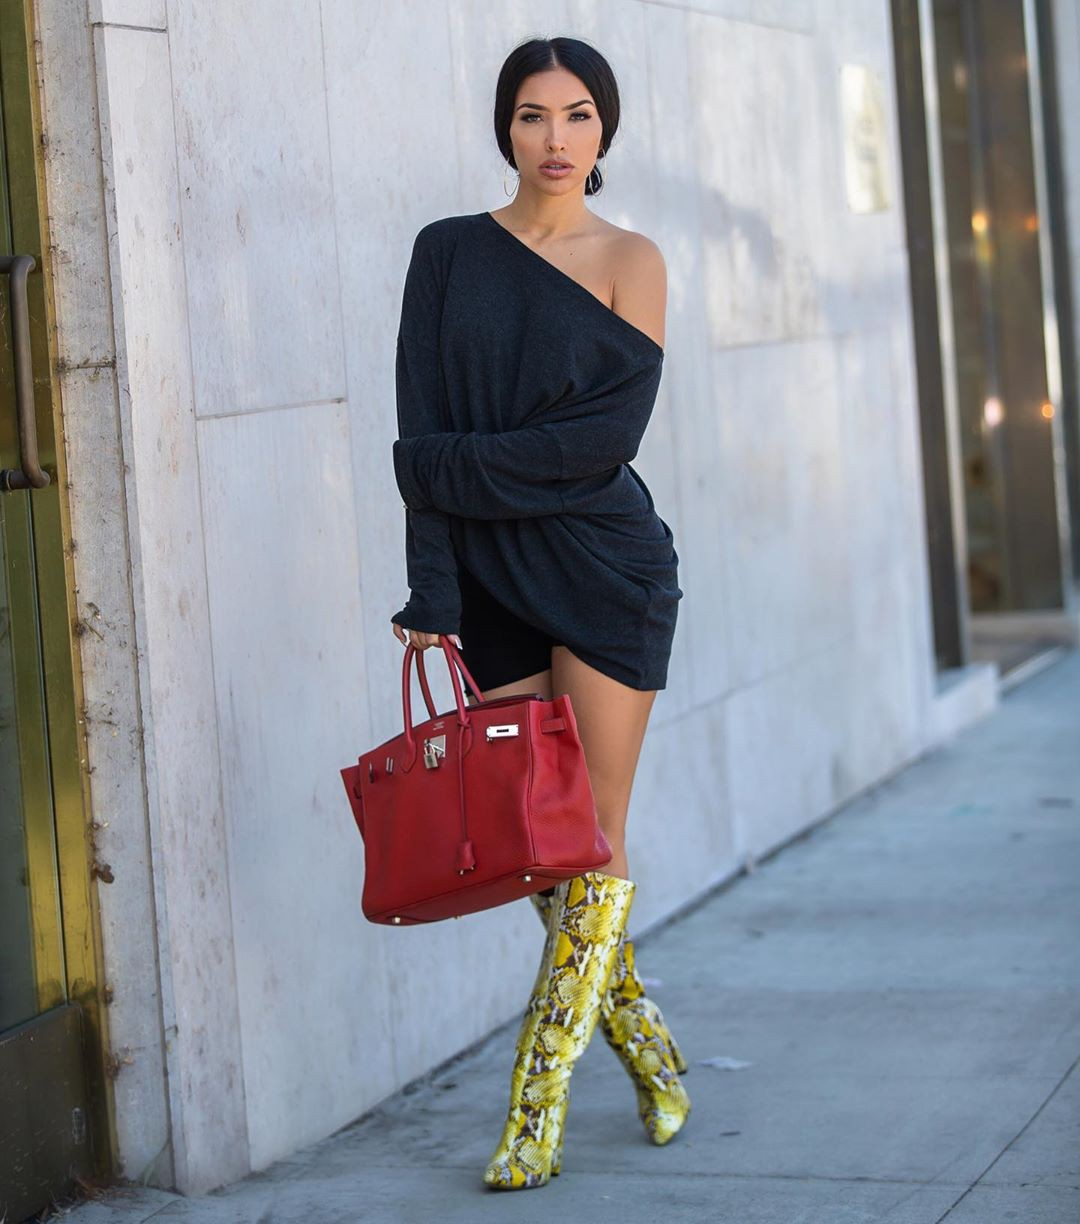 yellow colour outfit with dress, outfit designs, street fashion